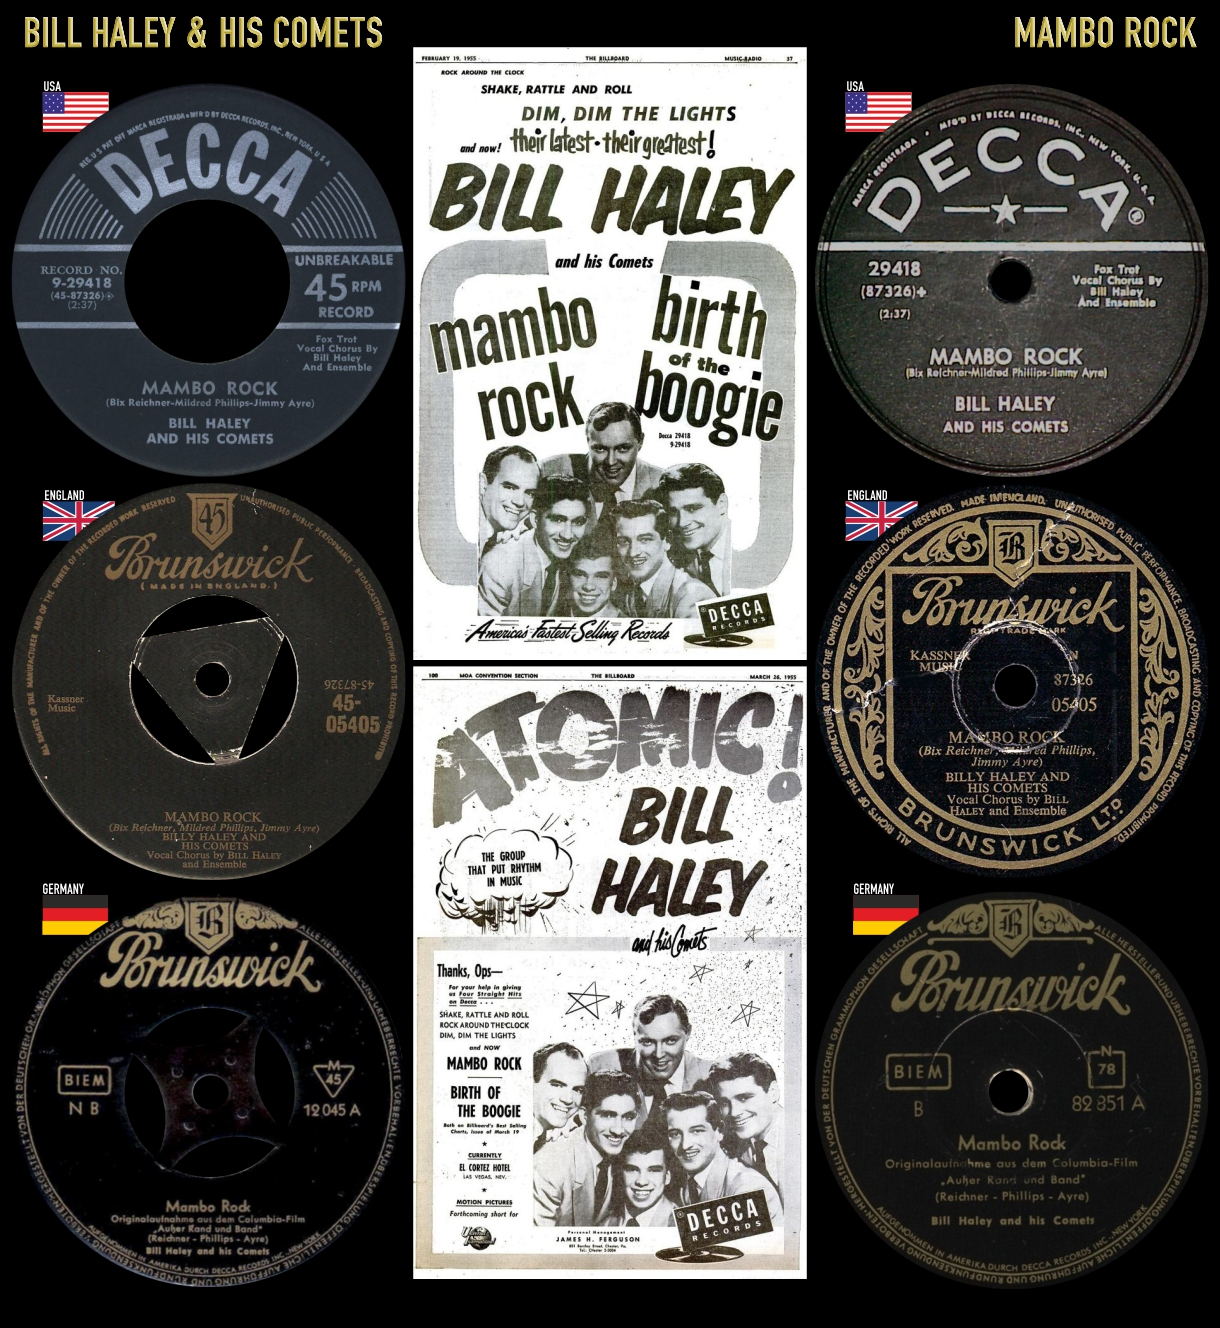 550305_Bill Haley_Mambo Rock